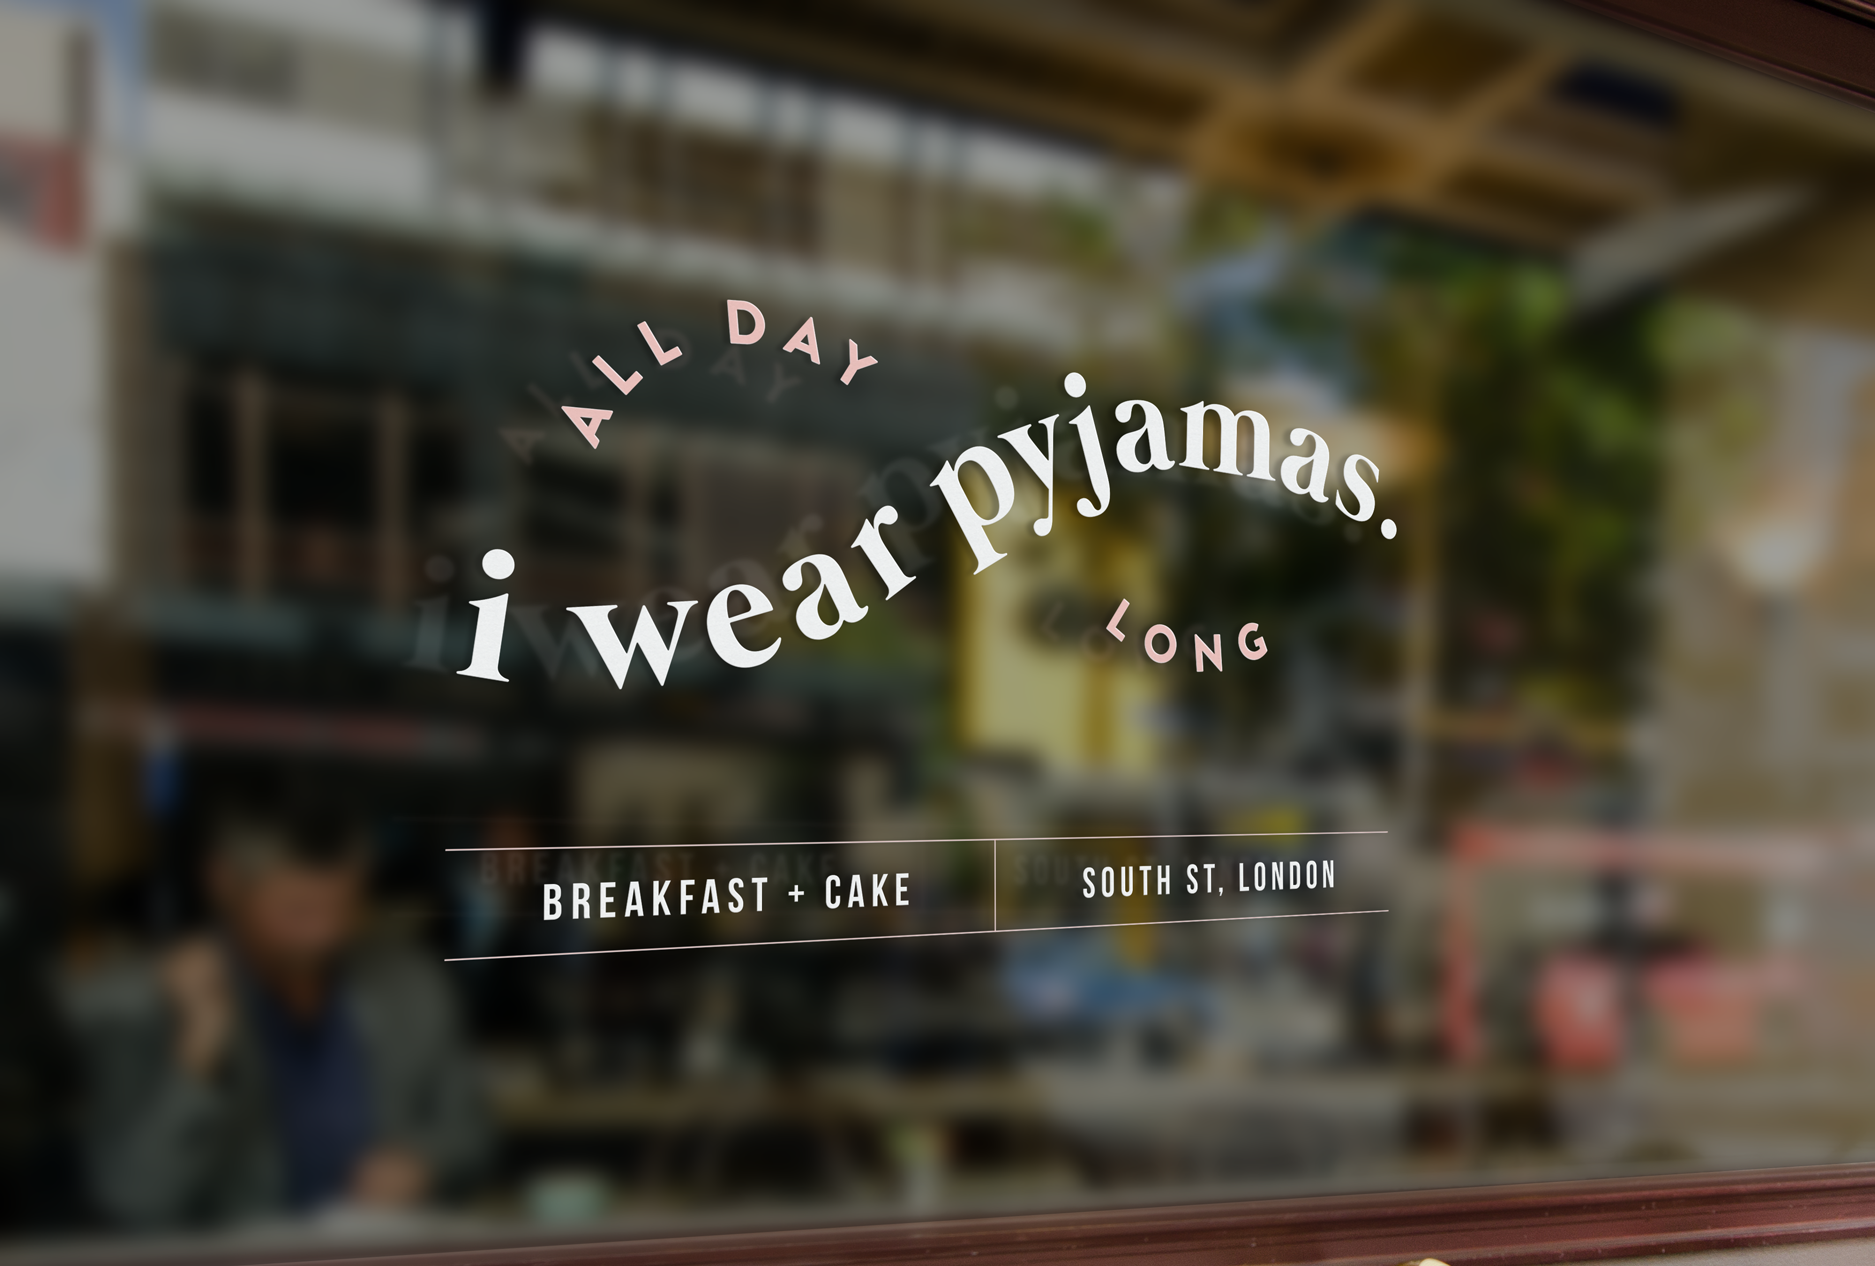 Window design for i wear pyjamas, a self-confessed breakfast & cake bar  - Designed by Wiltshire-based graphic designer, Kaye Huett